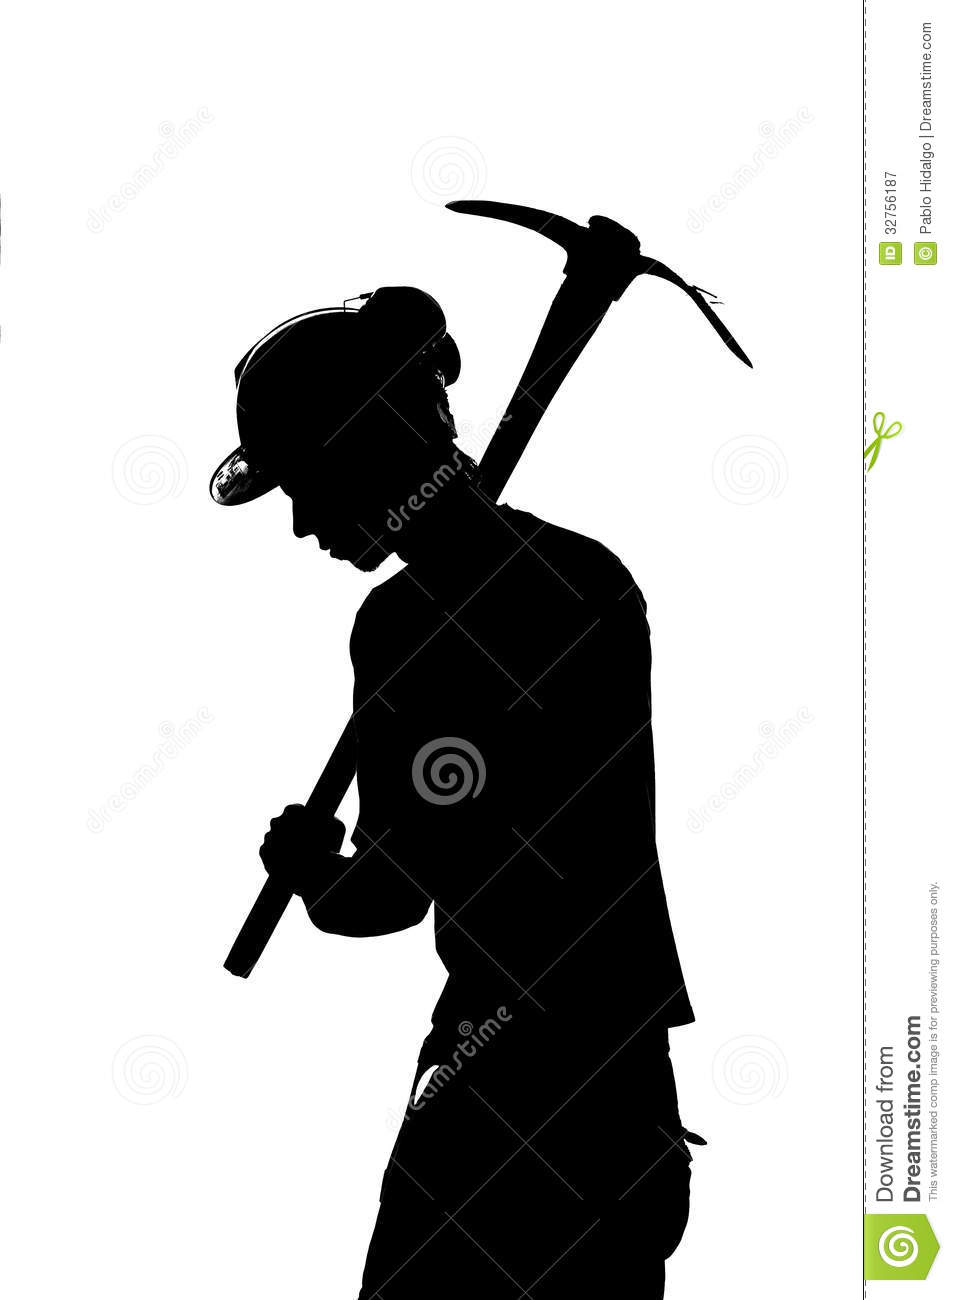 Silhouette of a mine worker with helmet royalty free stock